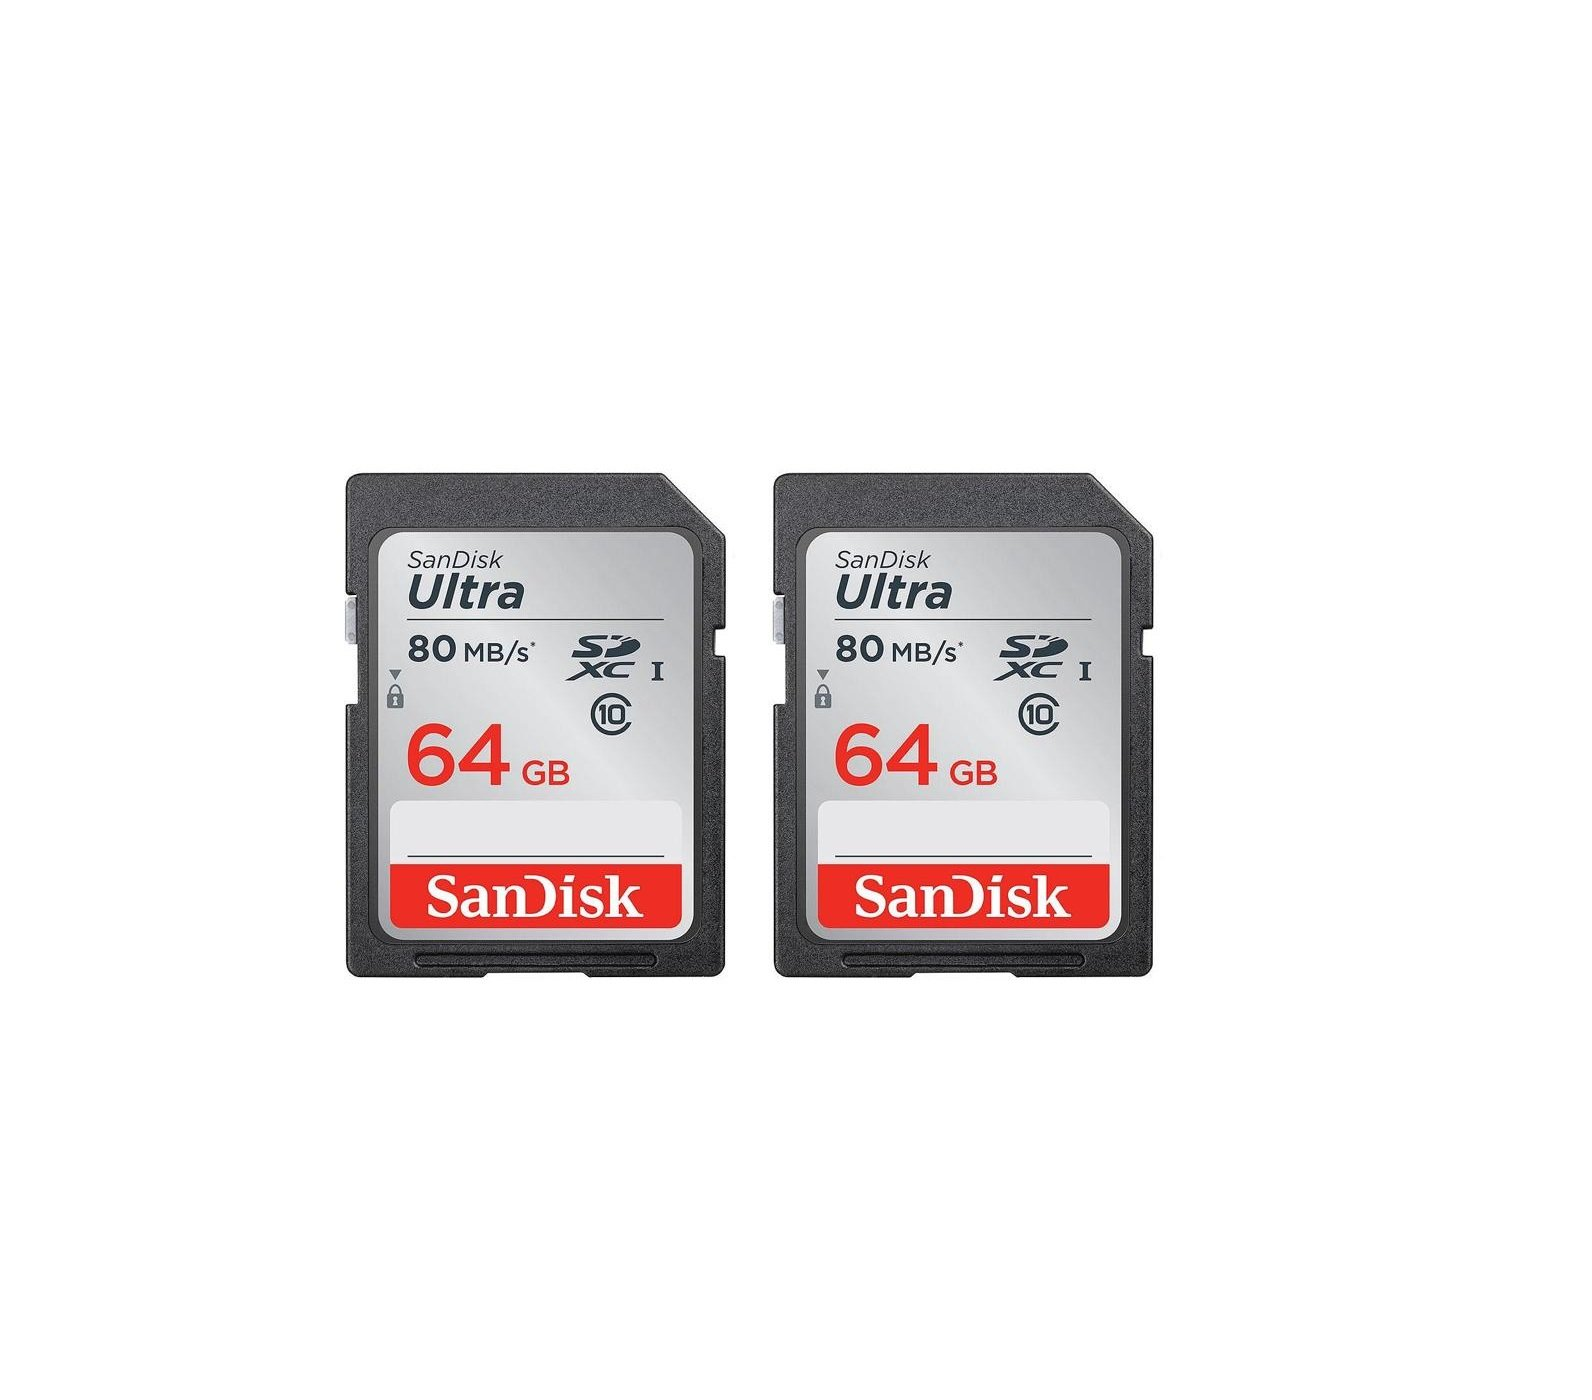 Sandisk Ultra 64GB 2‑pack SDXC UHS-I Class 10 Memory Card by SanDisk